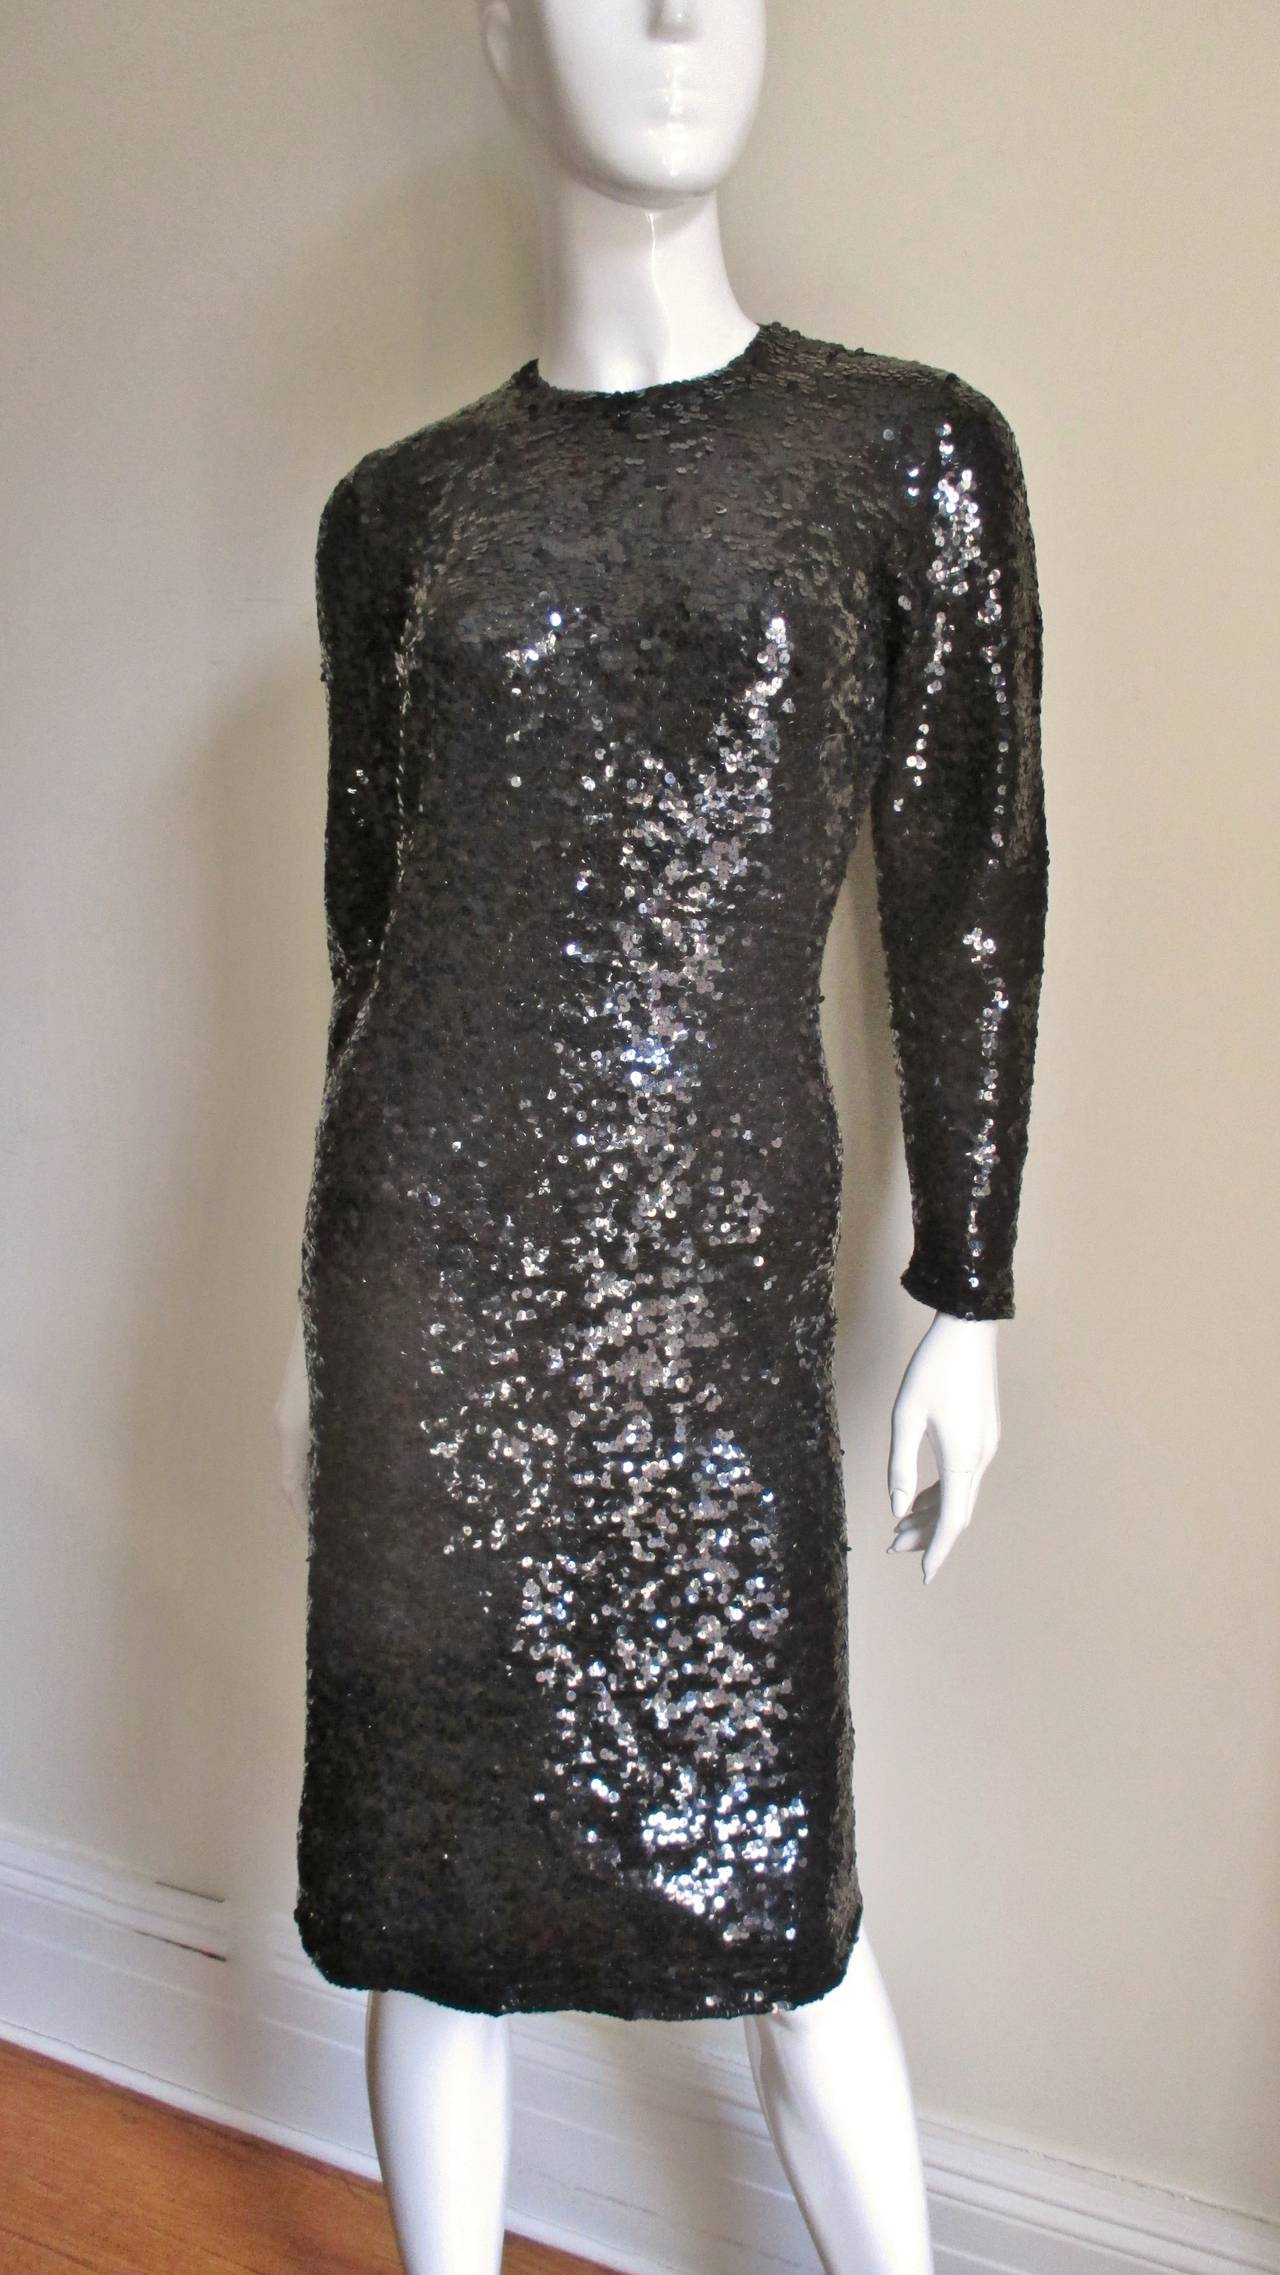 41ed1ef52ab59 1960's Sequin Dress With Detachable Collar and Cuffs at 1stdibs